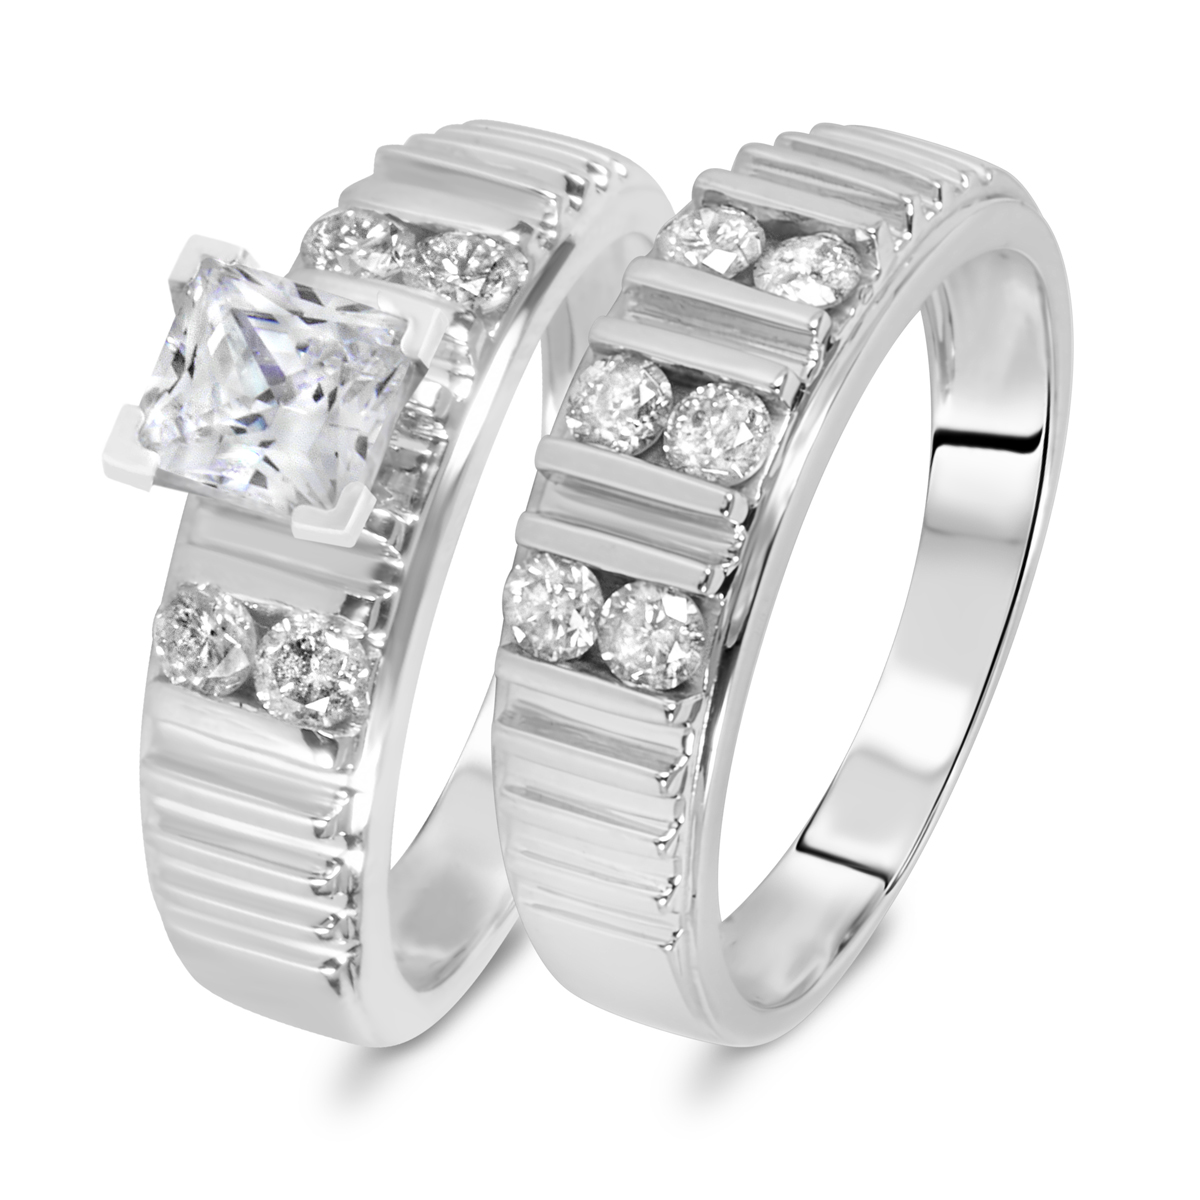 1 5/8 CT. T.W. Diamond Women's Bridal Wedding Ring Set 10K White Gold